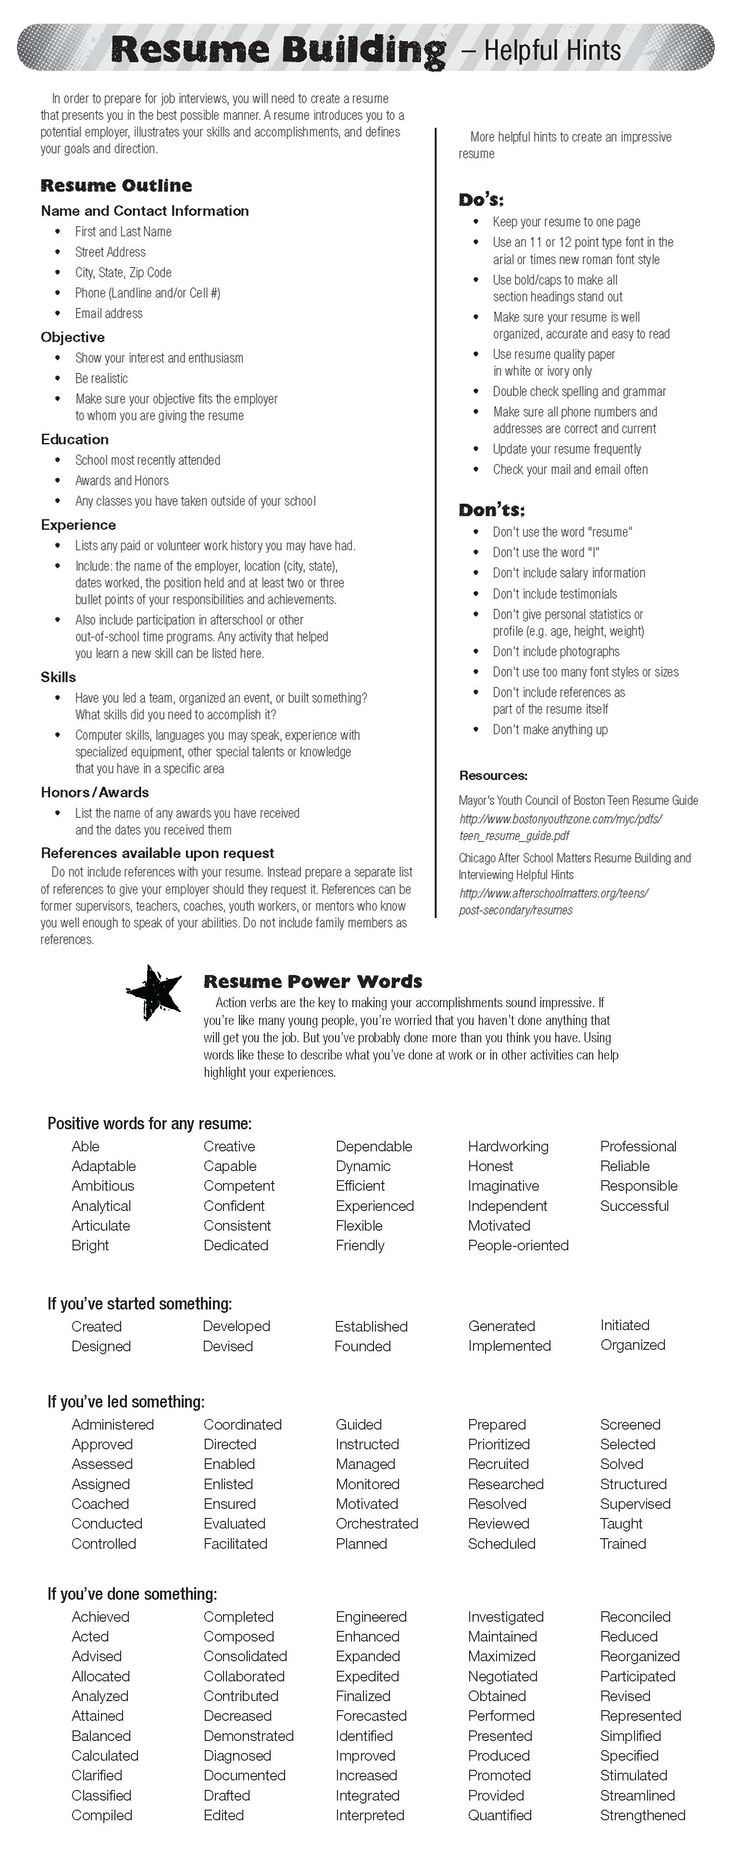 Opposenewapstandardsus  Pretty  Ideas About Resume On Pinterest  Cv Format Resume Cv And  With Fetching  Ideas About Resume On Pinterest  Cv Format Resume Cv And Resume Templates With Appealing Definition For Resume Also Should I Use Resume Paper In Addition Resume Doctor And Resume Builder Free Online Printable As Well As Volunteer Resume Samples Additionally Best Resume Font Size From Pinterestcom With Opposenewapstandardsus  Fetching  Ideas About Resume On Pinterest  Cv Format Resume Cv And  With Appealing  Ideas About Resume On Pinterest  Cv Format Resume Cv And Resume Templates And Pretty Definition For Resume Also Should I Use Resume Paper In Addition Resume Doctor From Pinterestcom